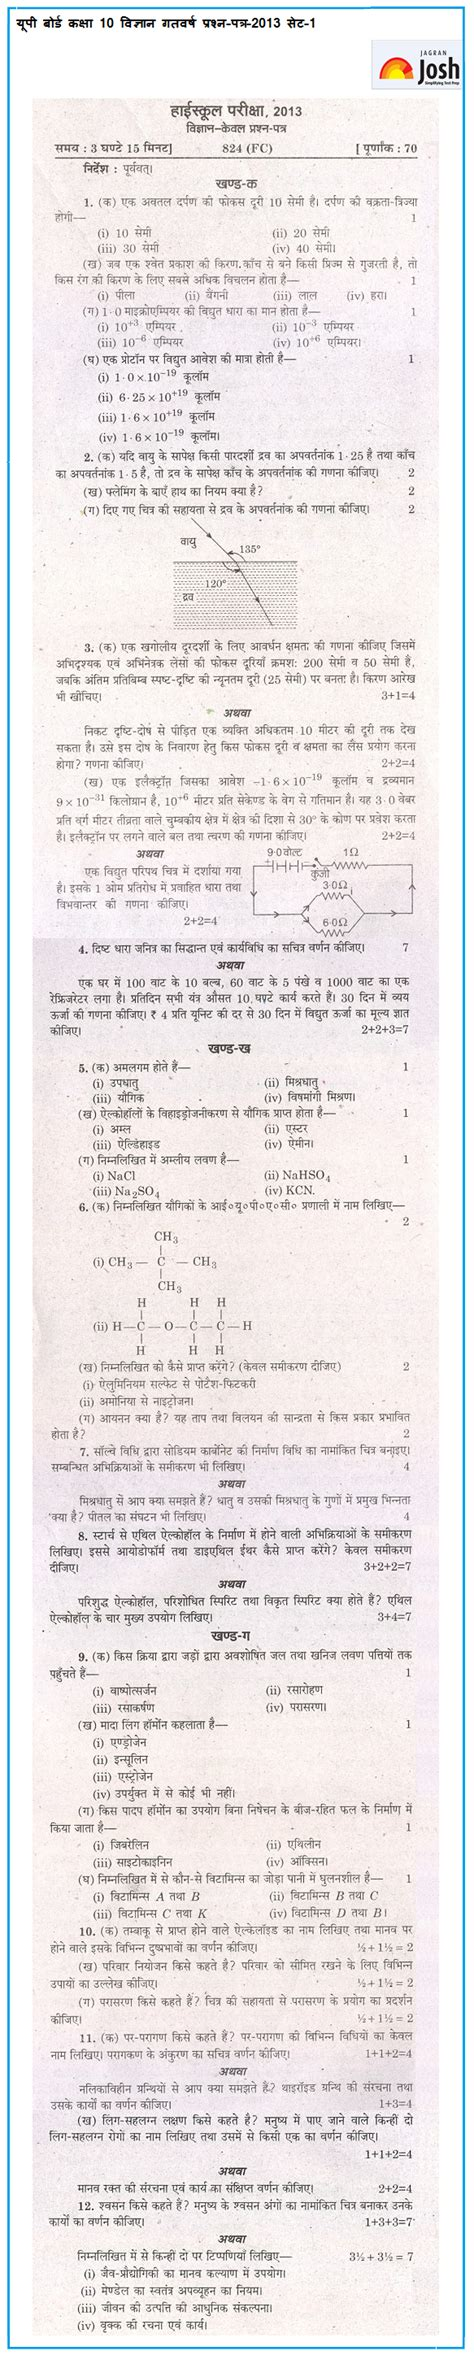 Marathi Essay Book For 9th Standard by Science Question Paper For Class 10 2013 Ssc Mp Board Class 10 Question Papers